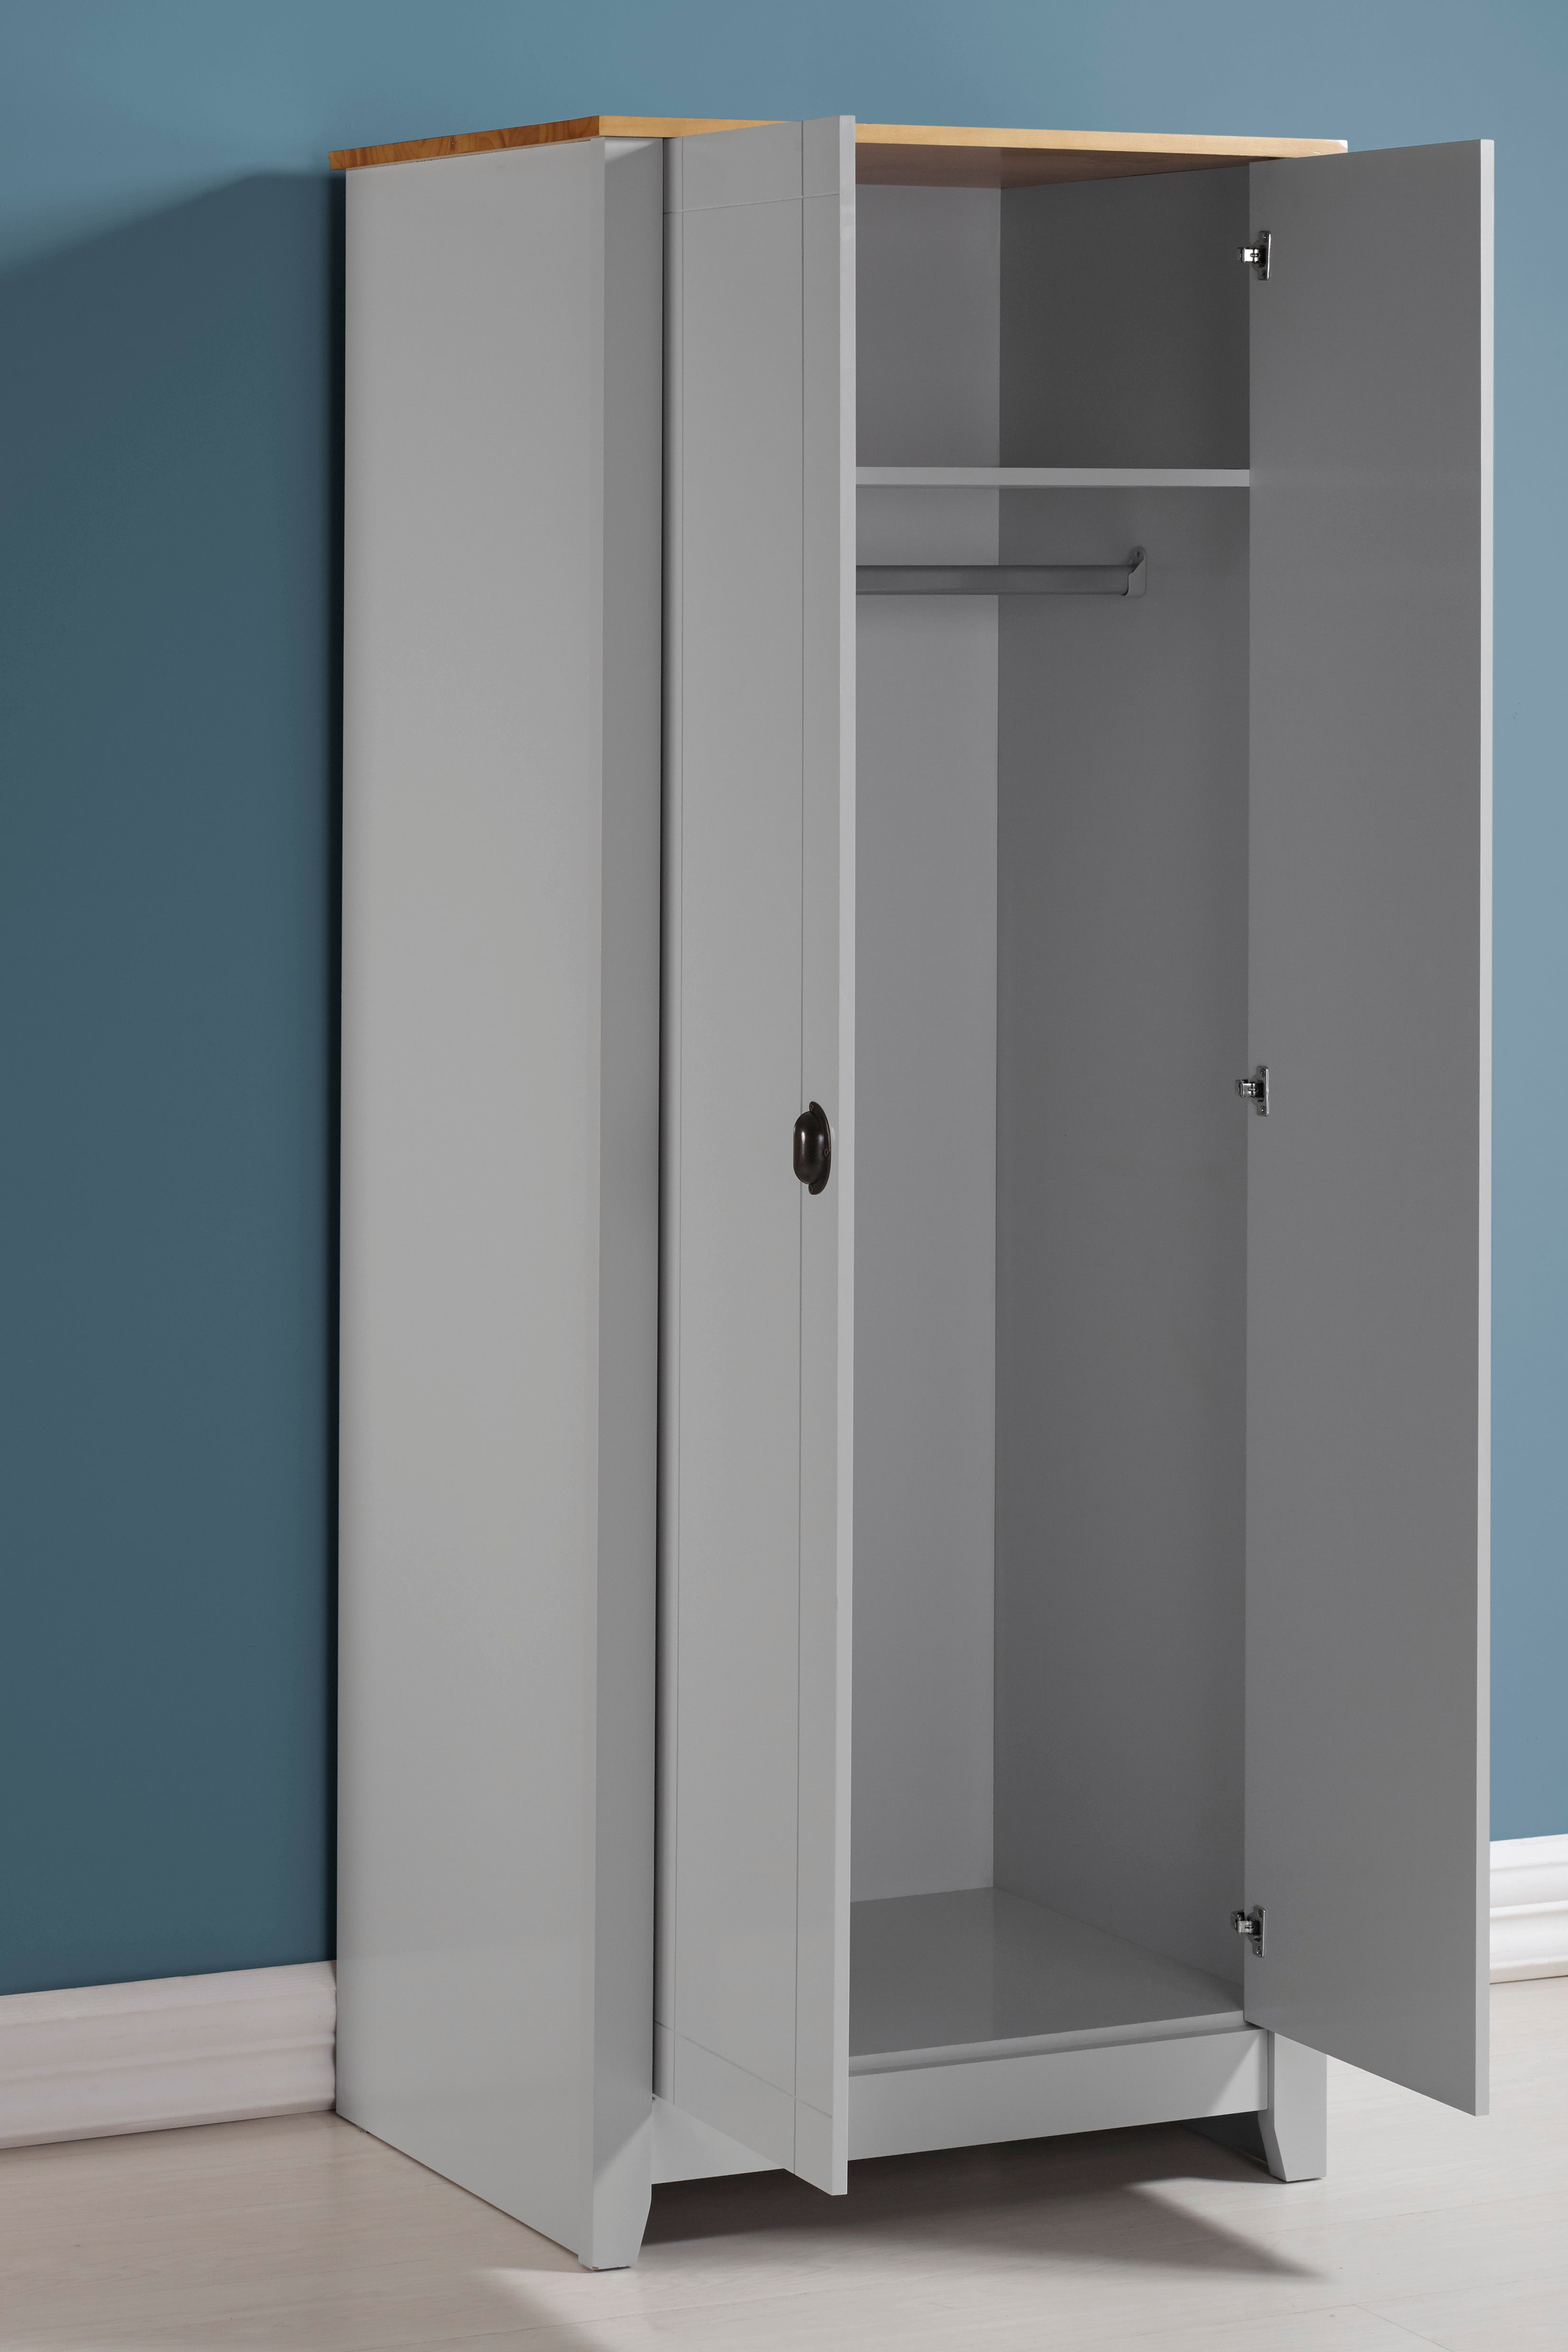 h tall departments wardrobe diy grey effect w b cabinet d bq prd oak at darwin form q